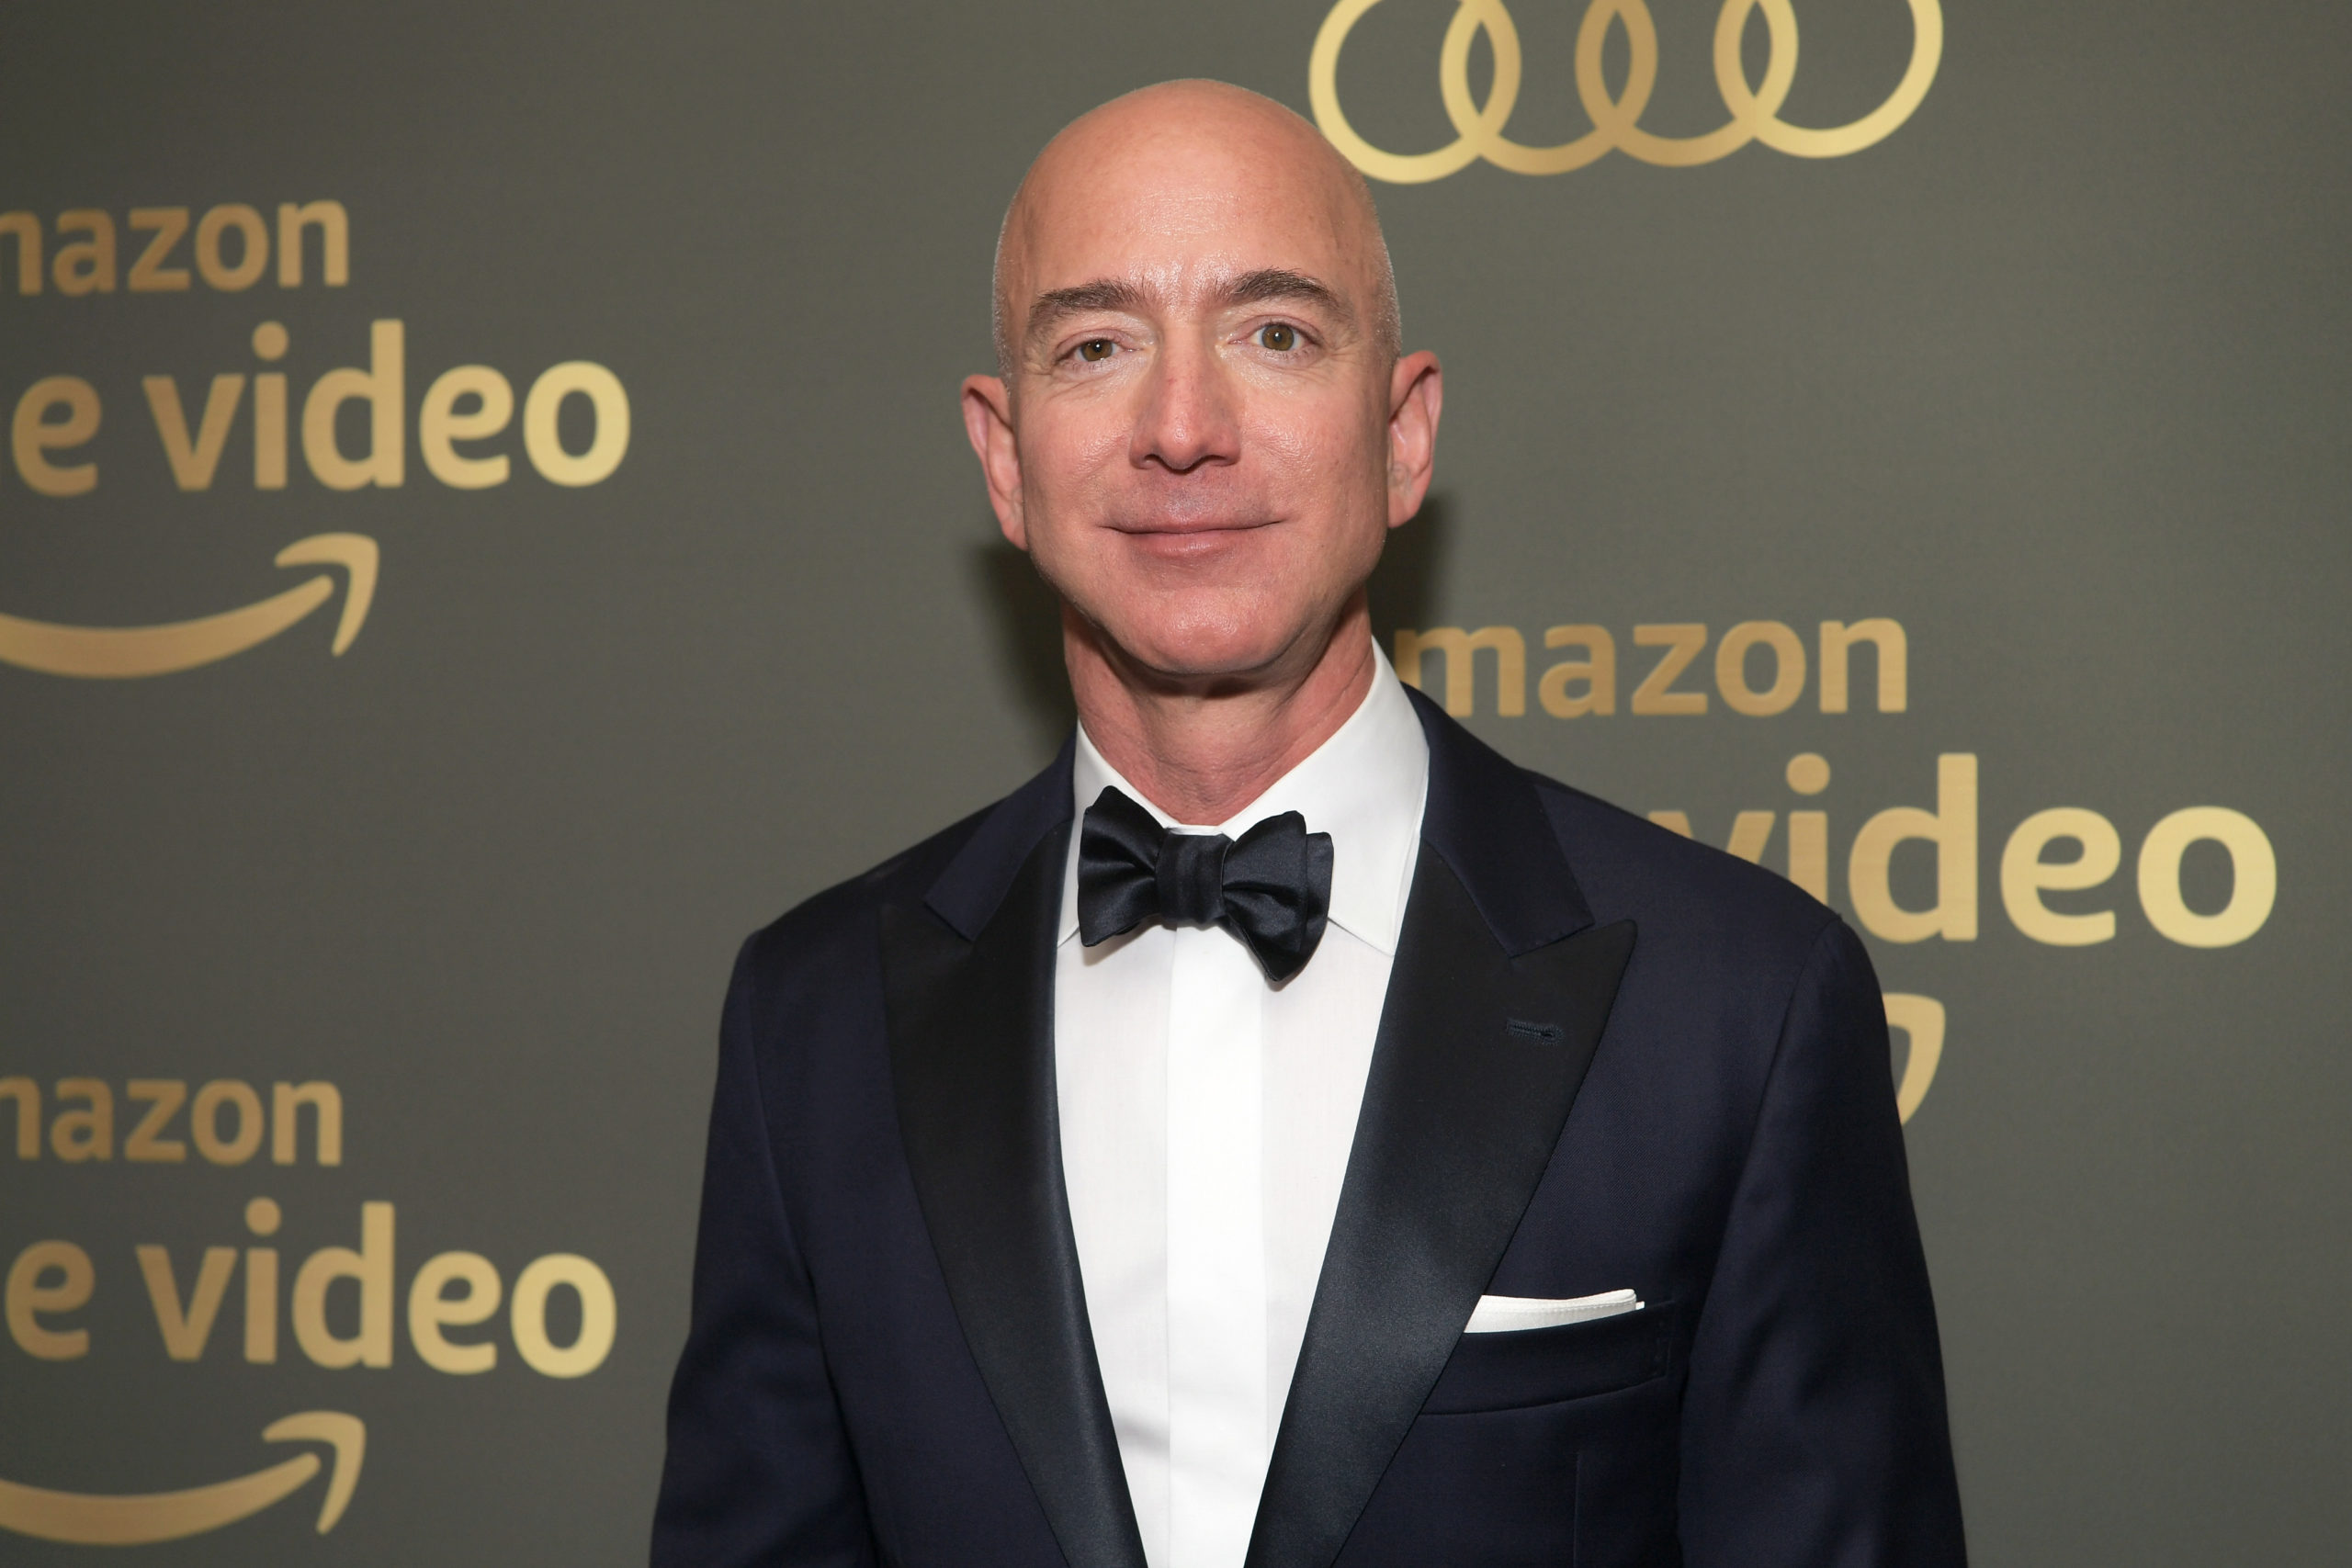 Jeff Bezos Trillionaire tale and Nigeria e-commerce - An analysis - Brand Spur